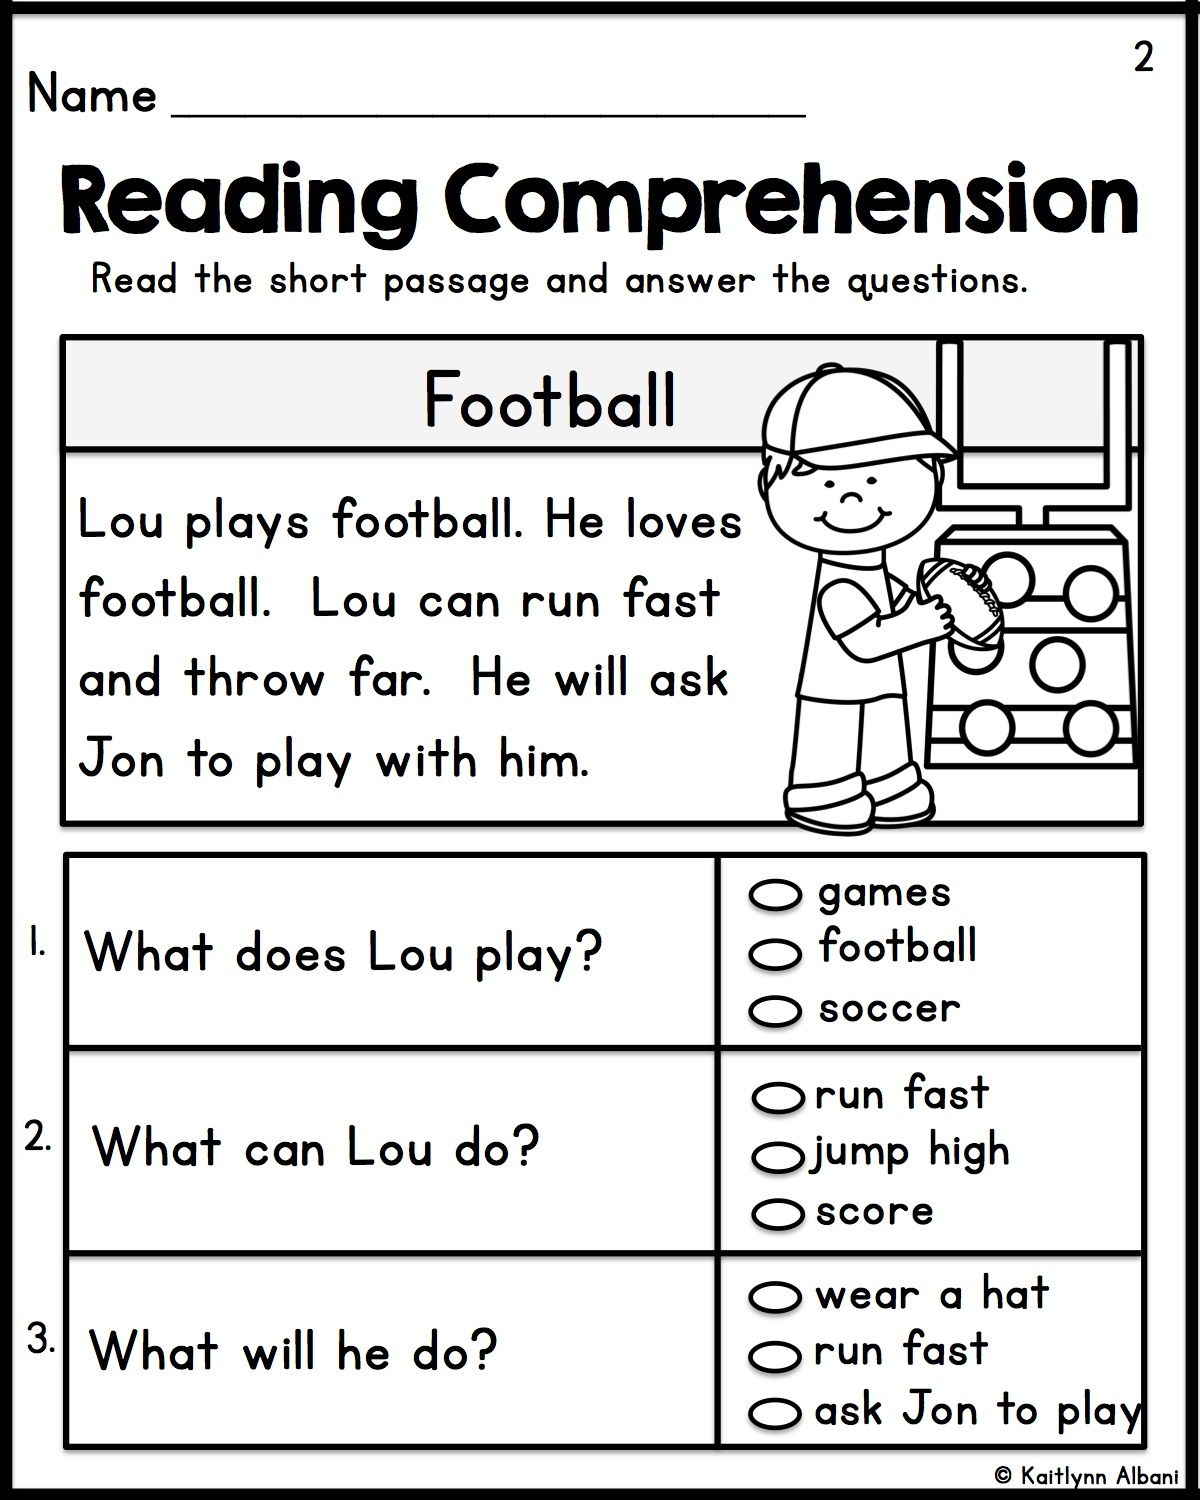 Kindergarten Reading Comprehension Passages - Set 1 | Teacher | Free Printable Reading Worksheets For 1St Grade